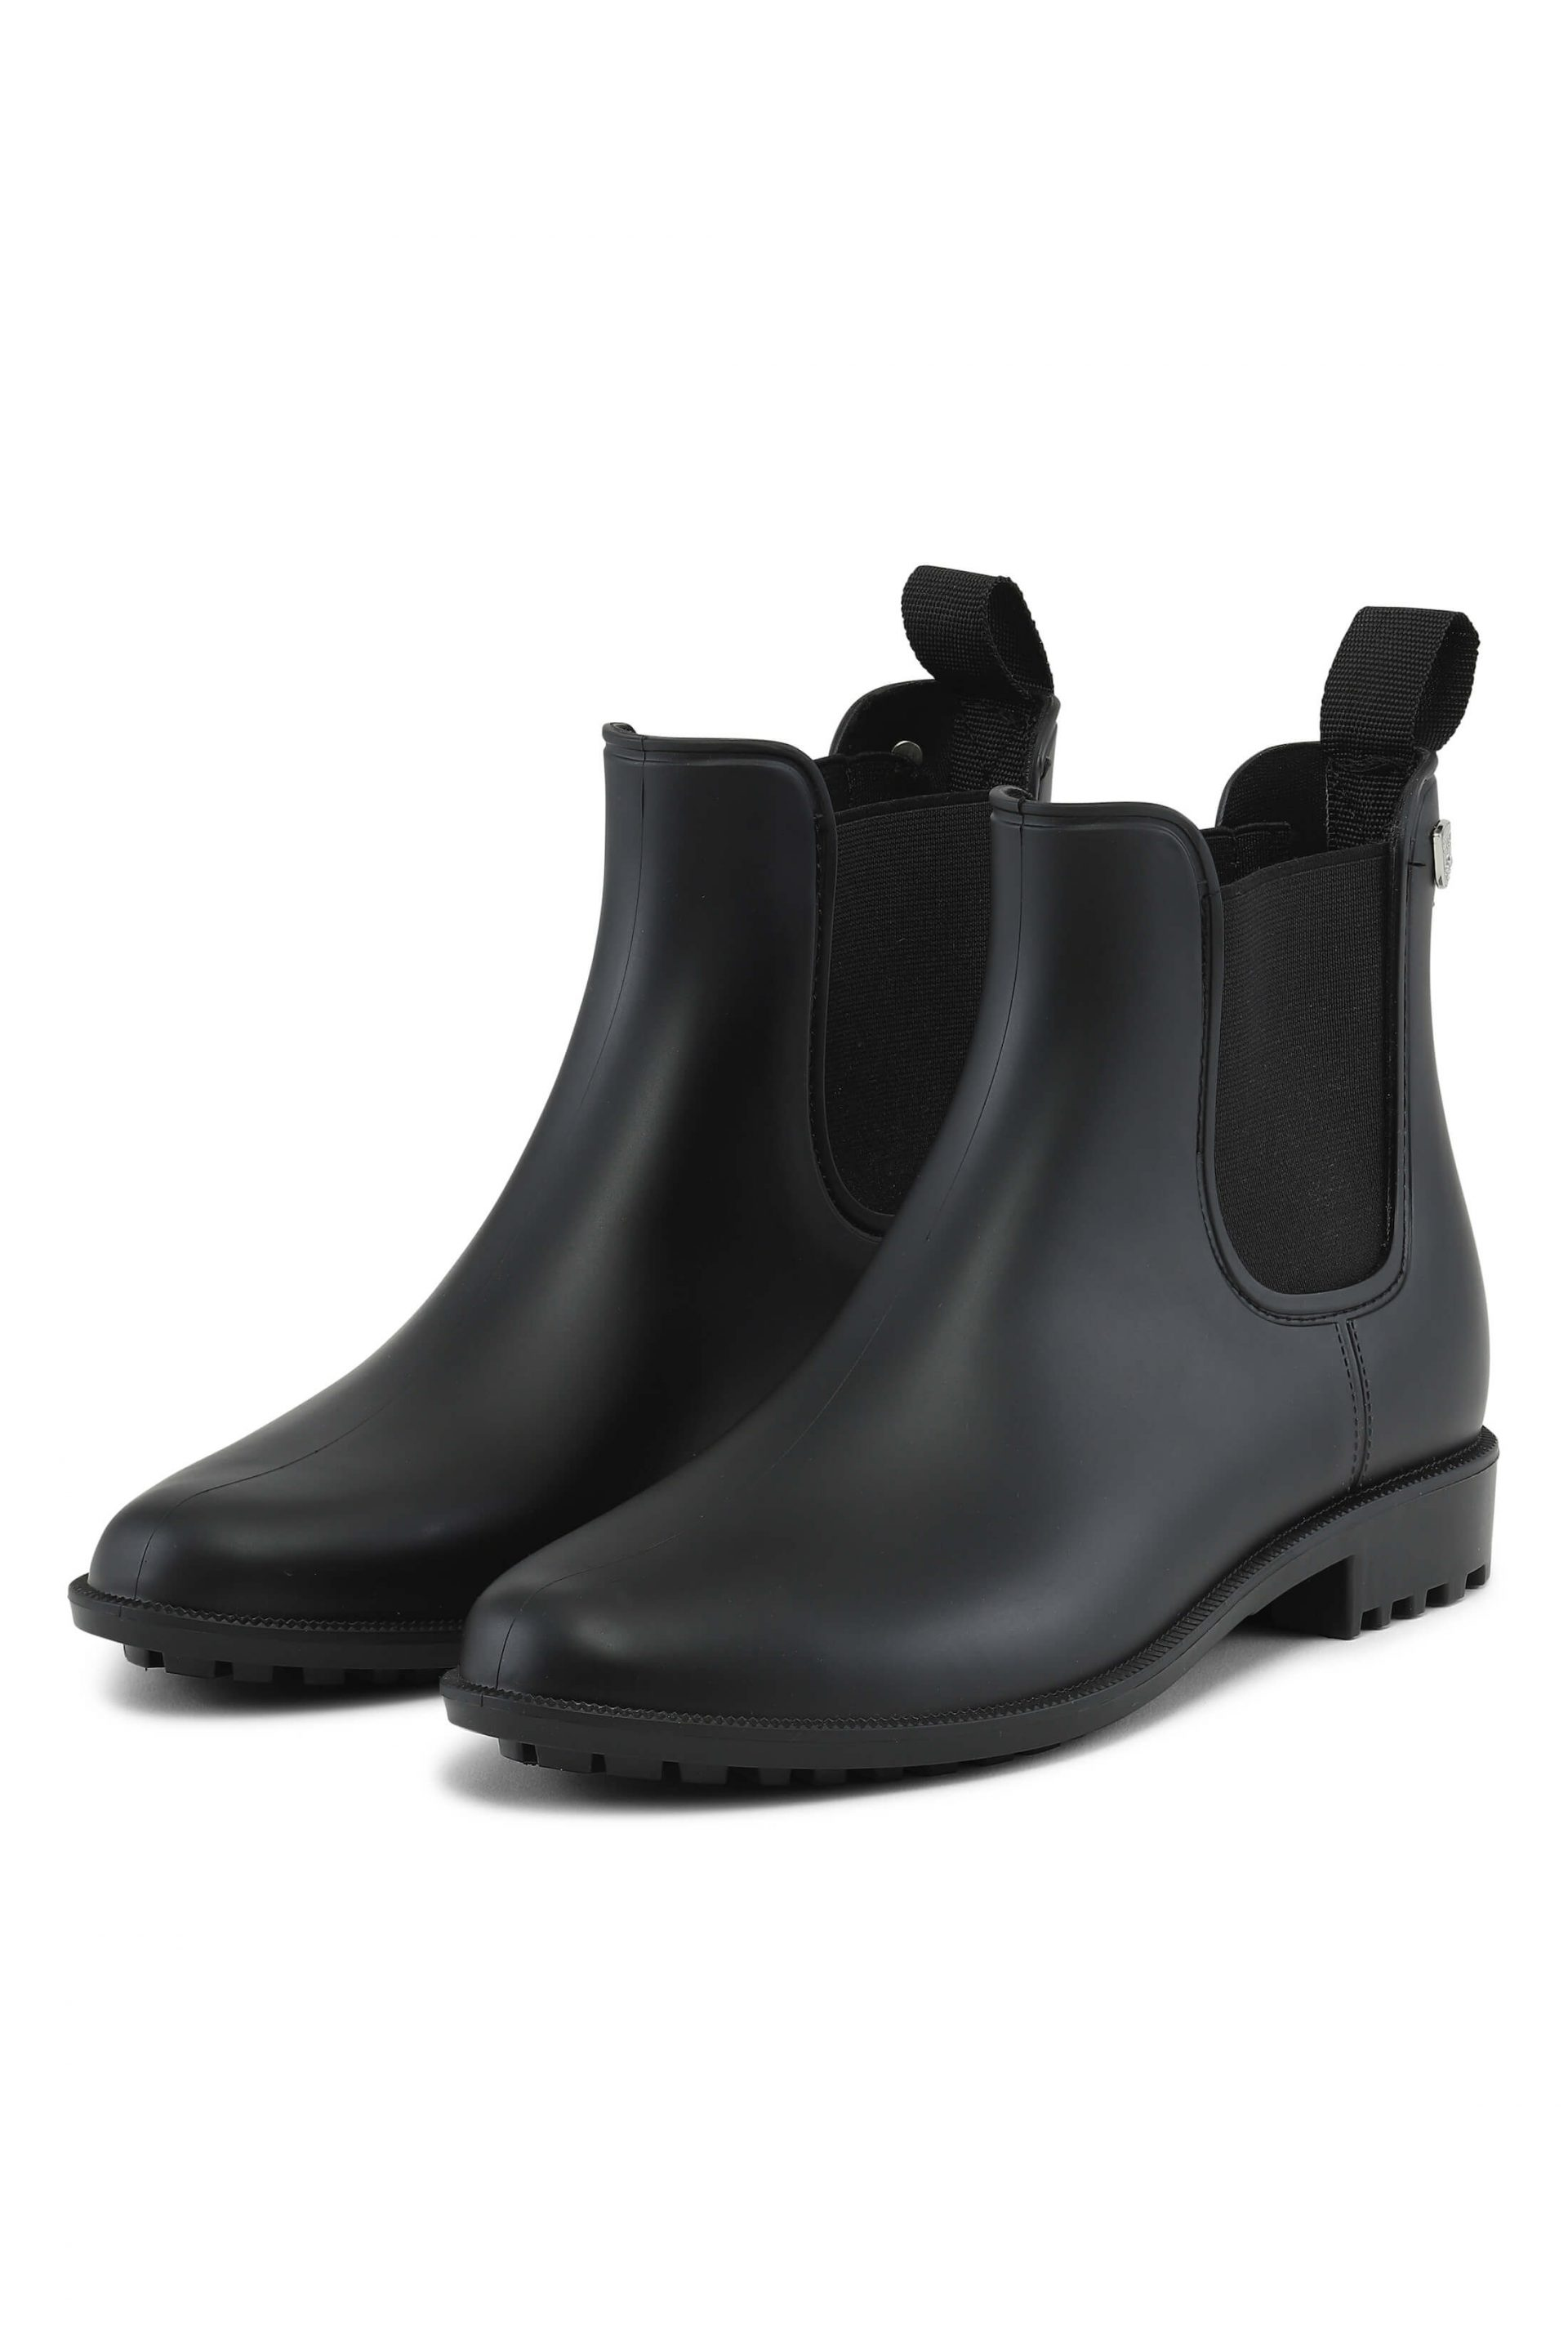 Black matte rainboots in a elegant design